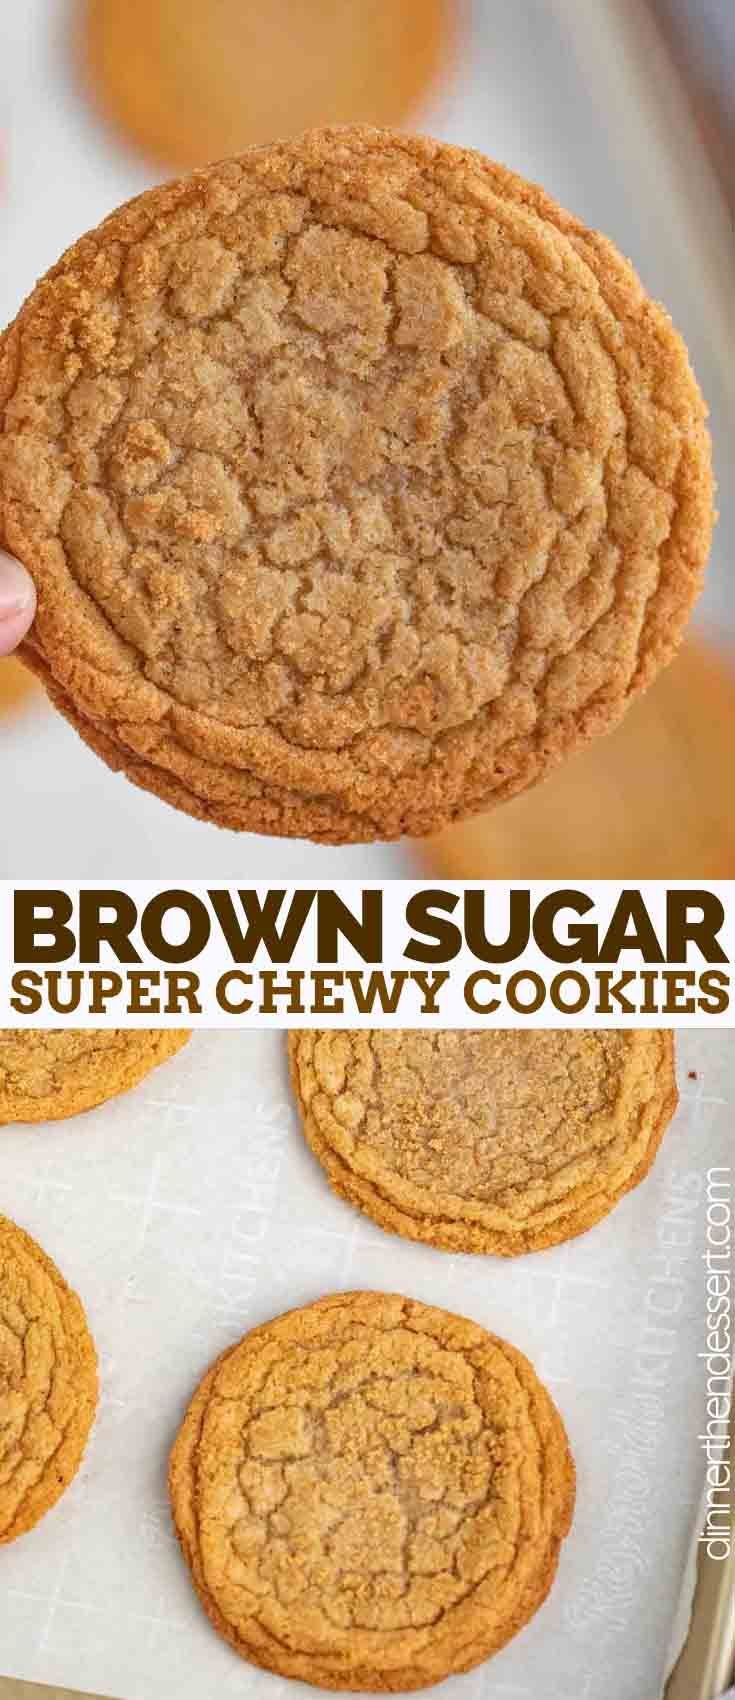 Brown Sugar Cookies made with dark brown sugar and butter are sweet, soft, chewy, and the PERFECT spin on the traditional cookie ready in under 30 minutes! #Cookies #DinnerThenDessert #CookieSeason #BrownSugar #BakingCookies #christmas #holidays #brownsugar